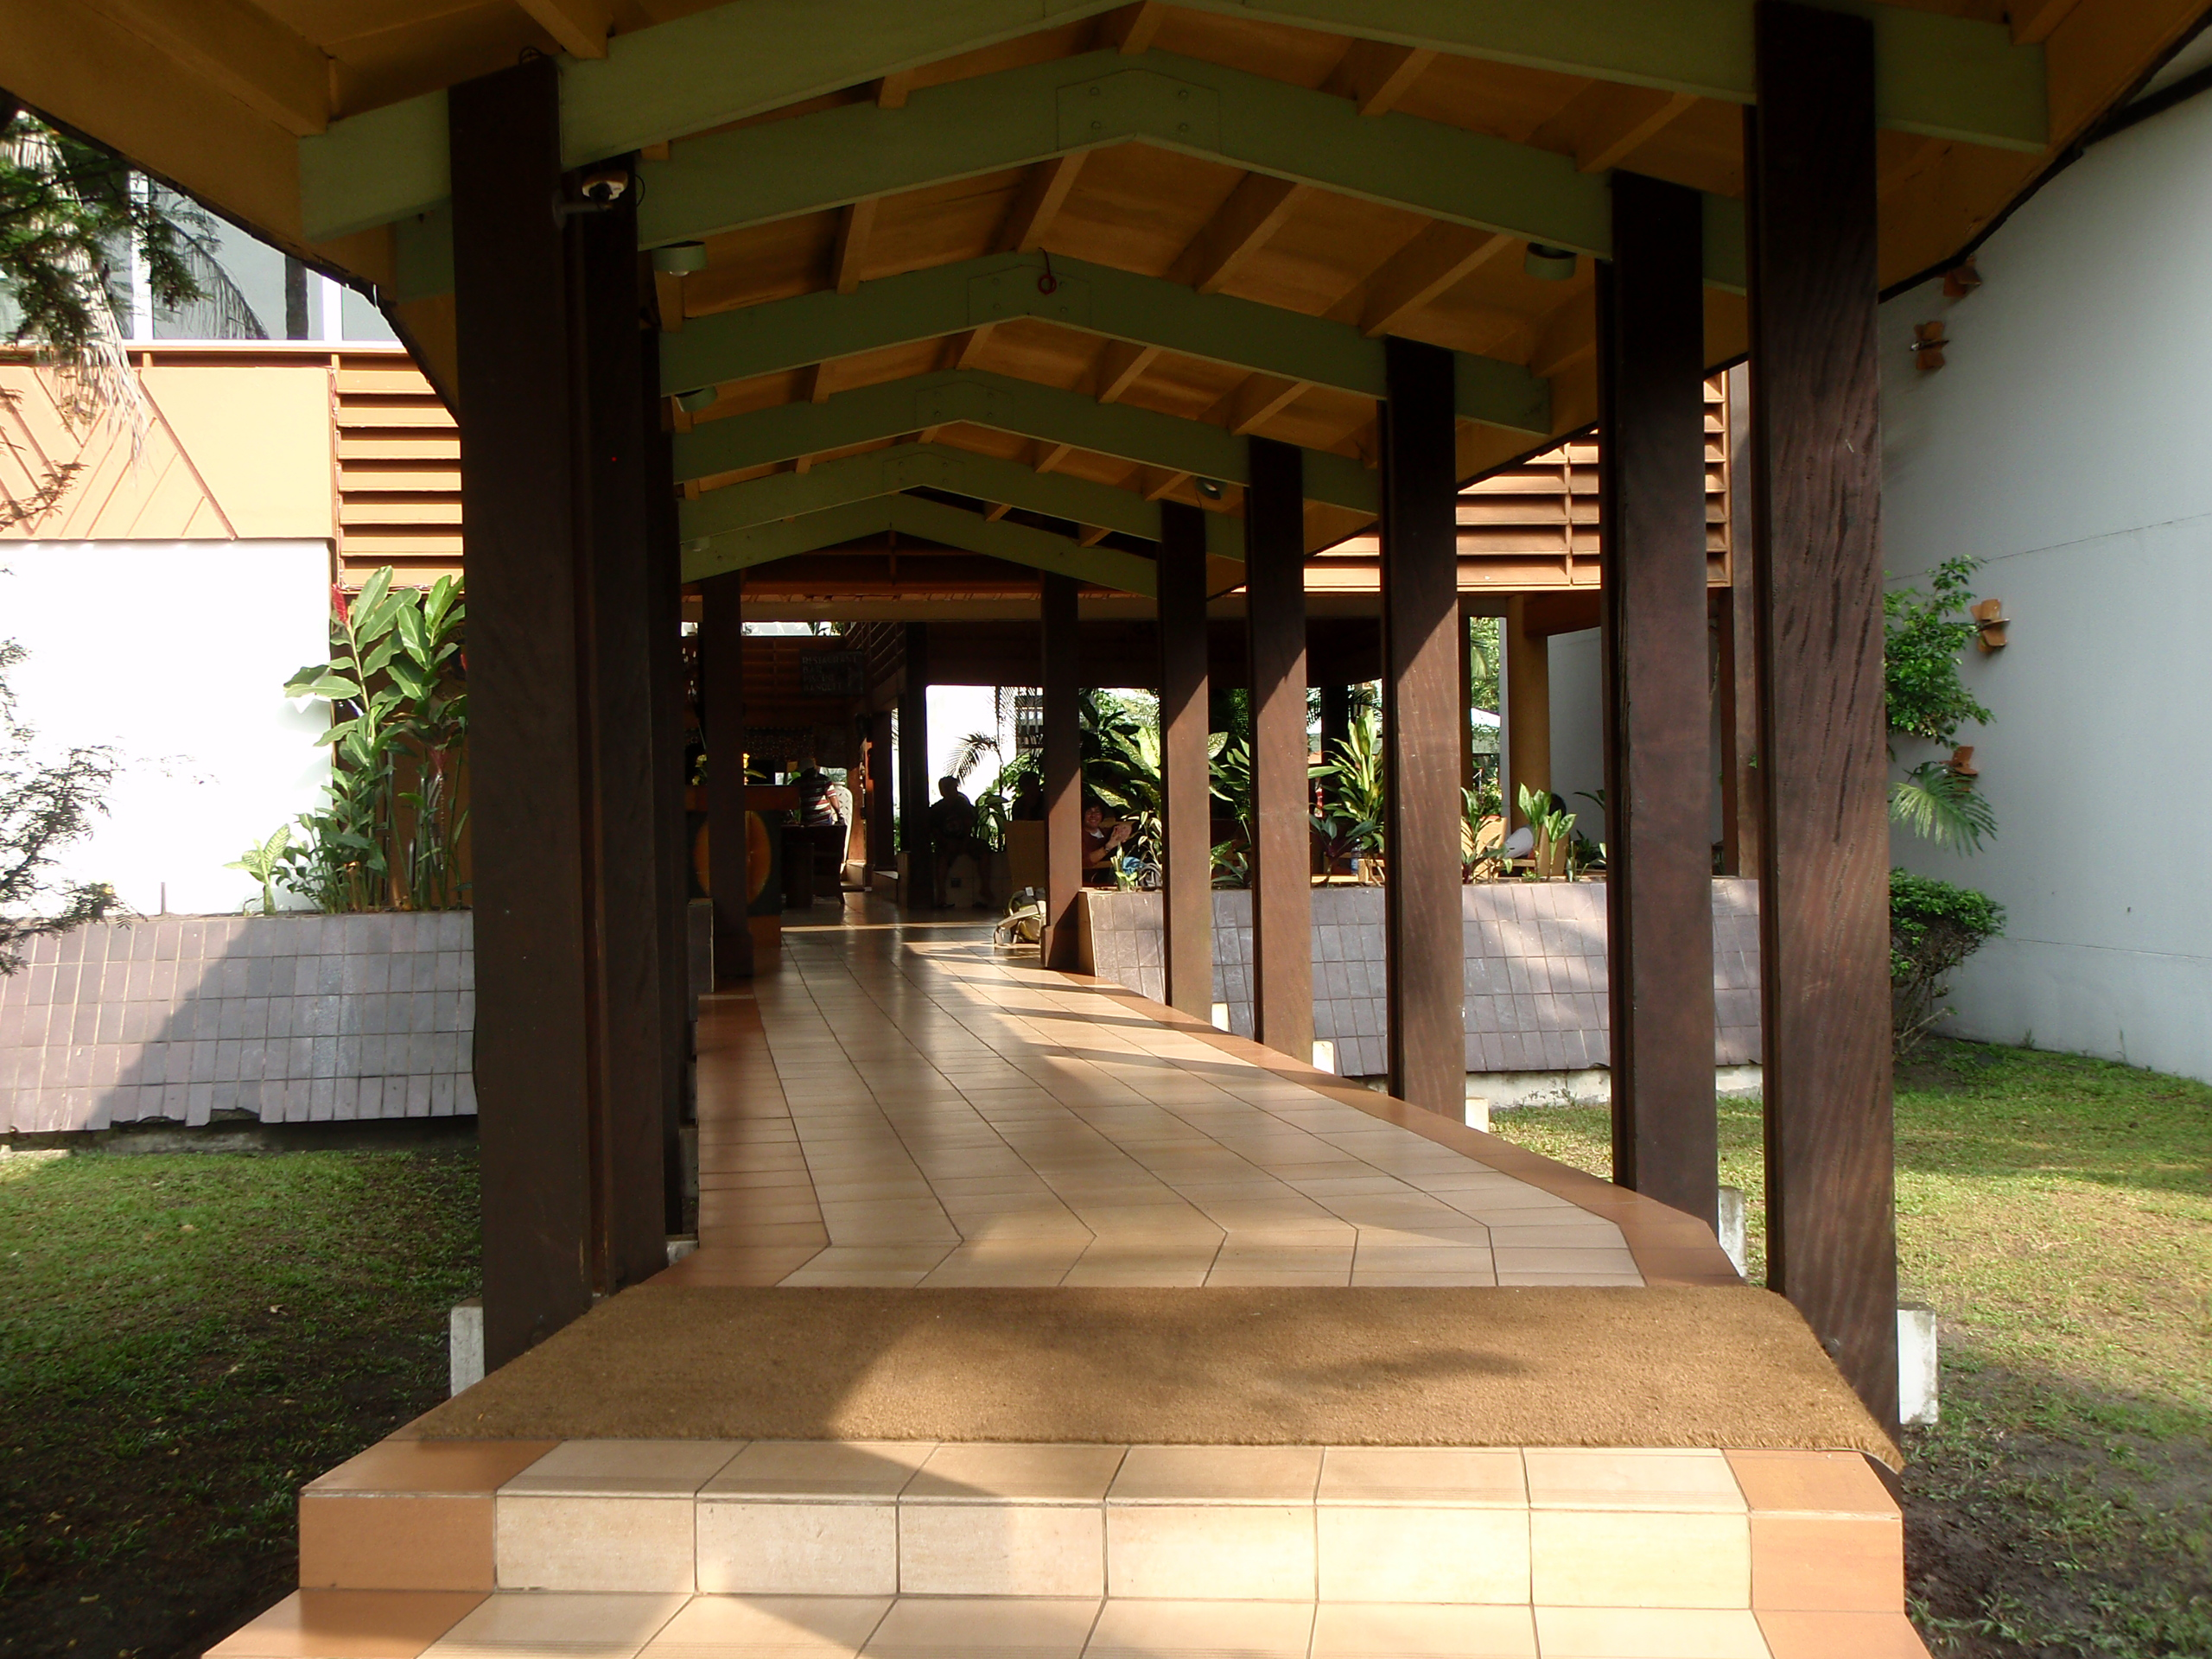 Hotel Entrance; Port Gentil, Gabon; 2010